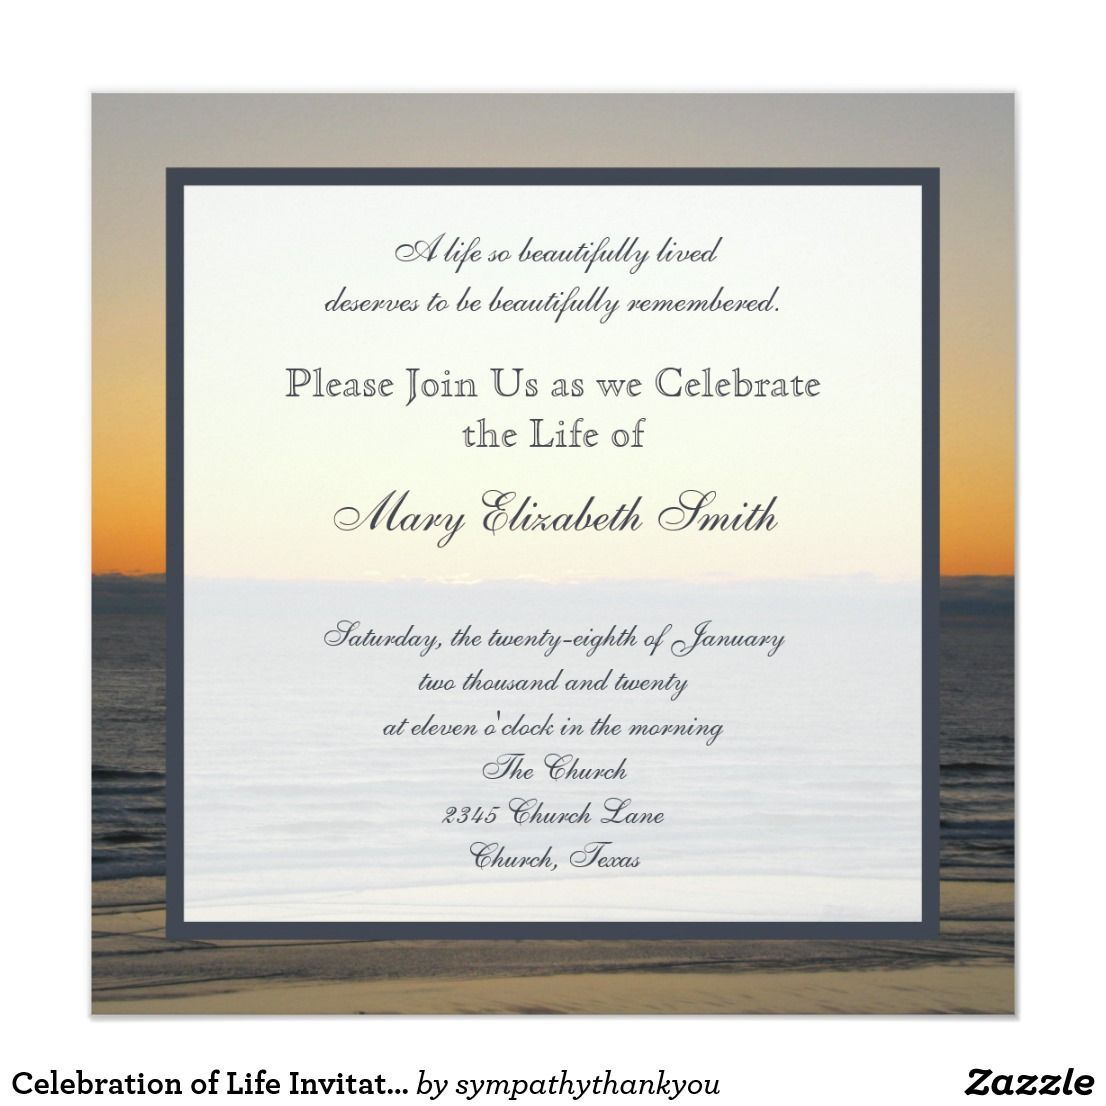 003 Simple Celebration Of Life Invitation Template Free High Def Full